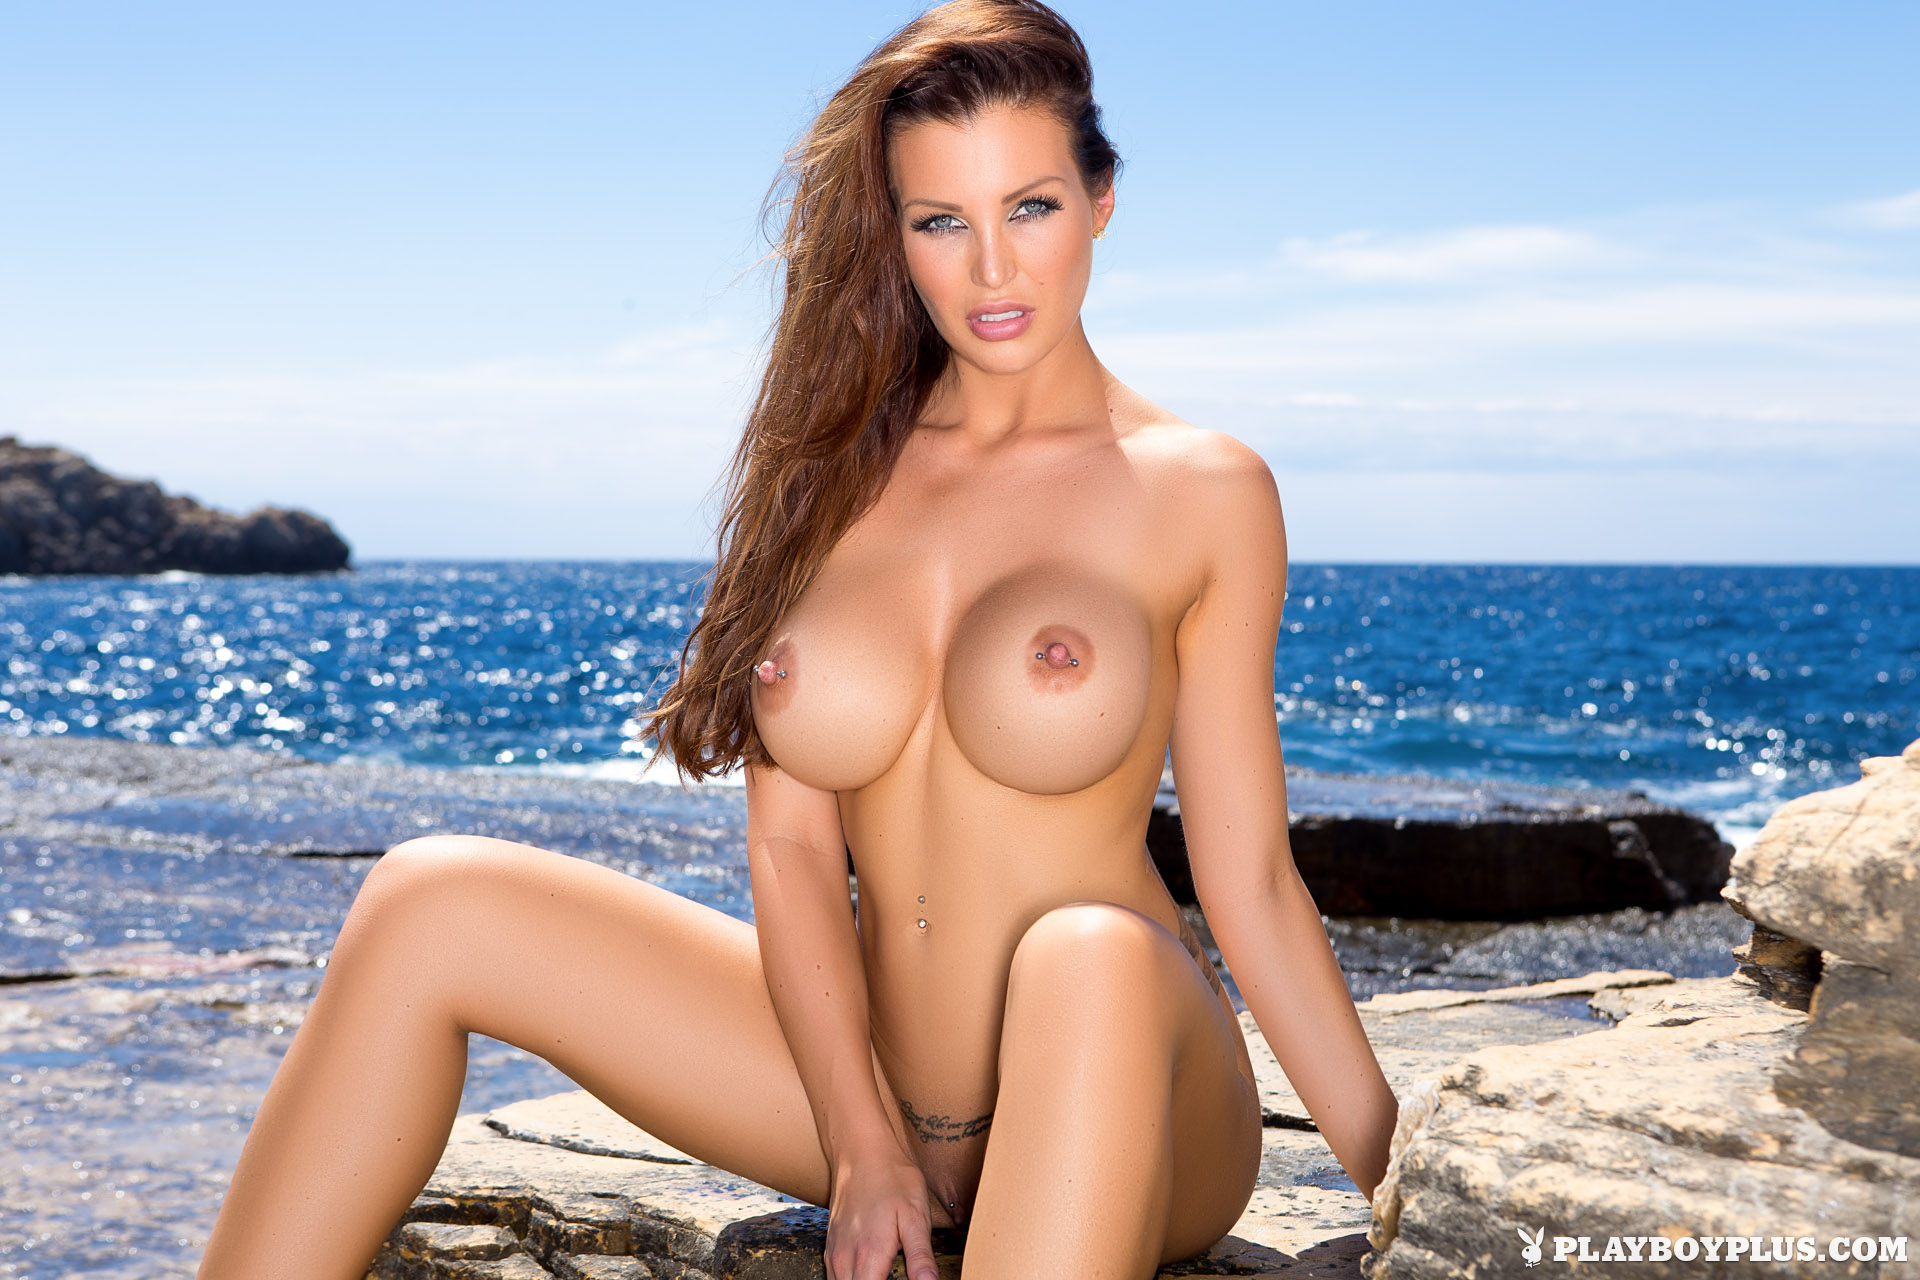 Helen de muro german playboy whore 2